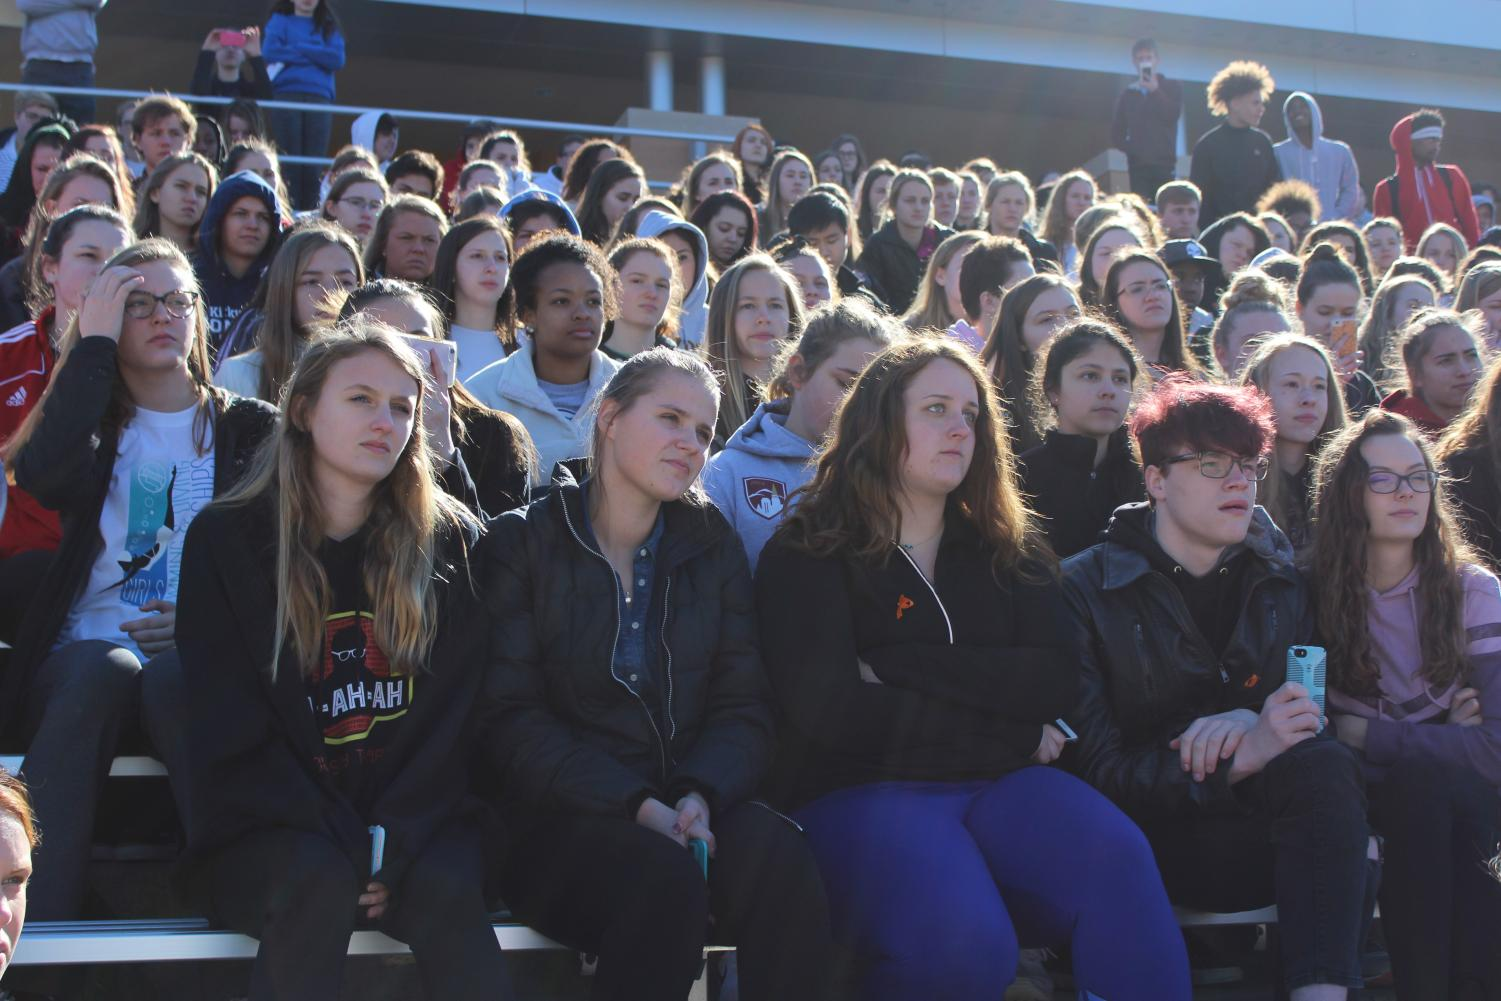 Students+sit+in+the+bleachers+and+listen+to+speakers.